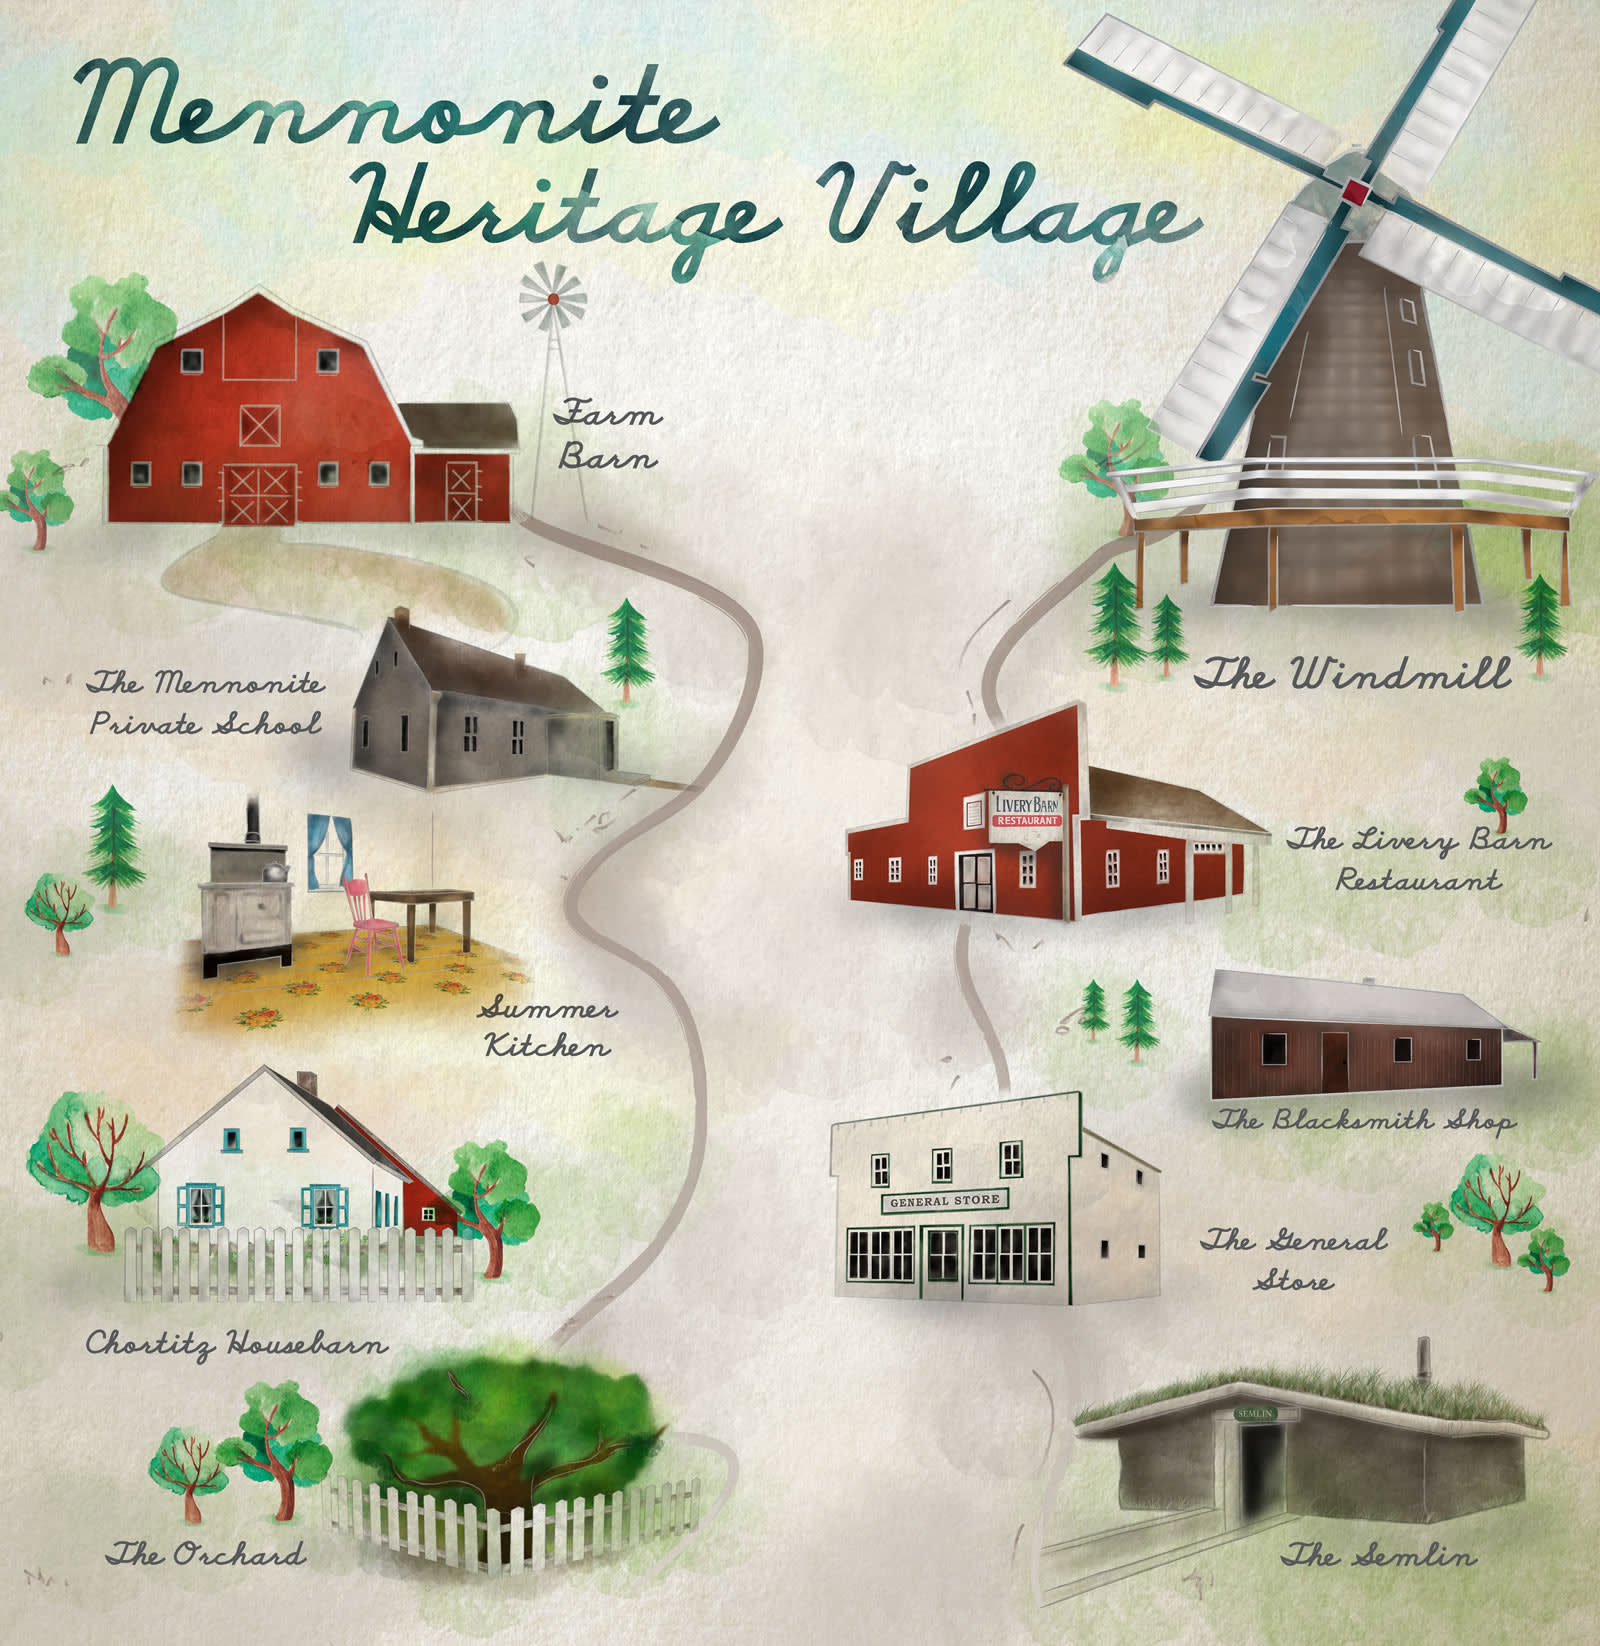 Mennonite Heritage Village: A journey through the structures that built a bustling community